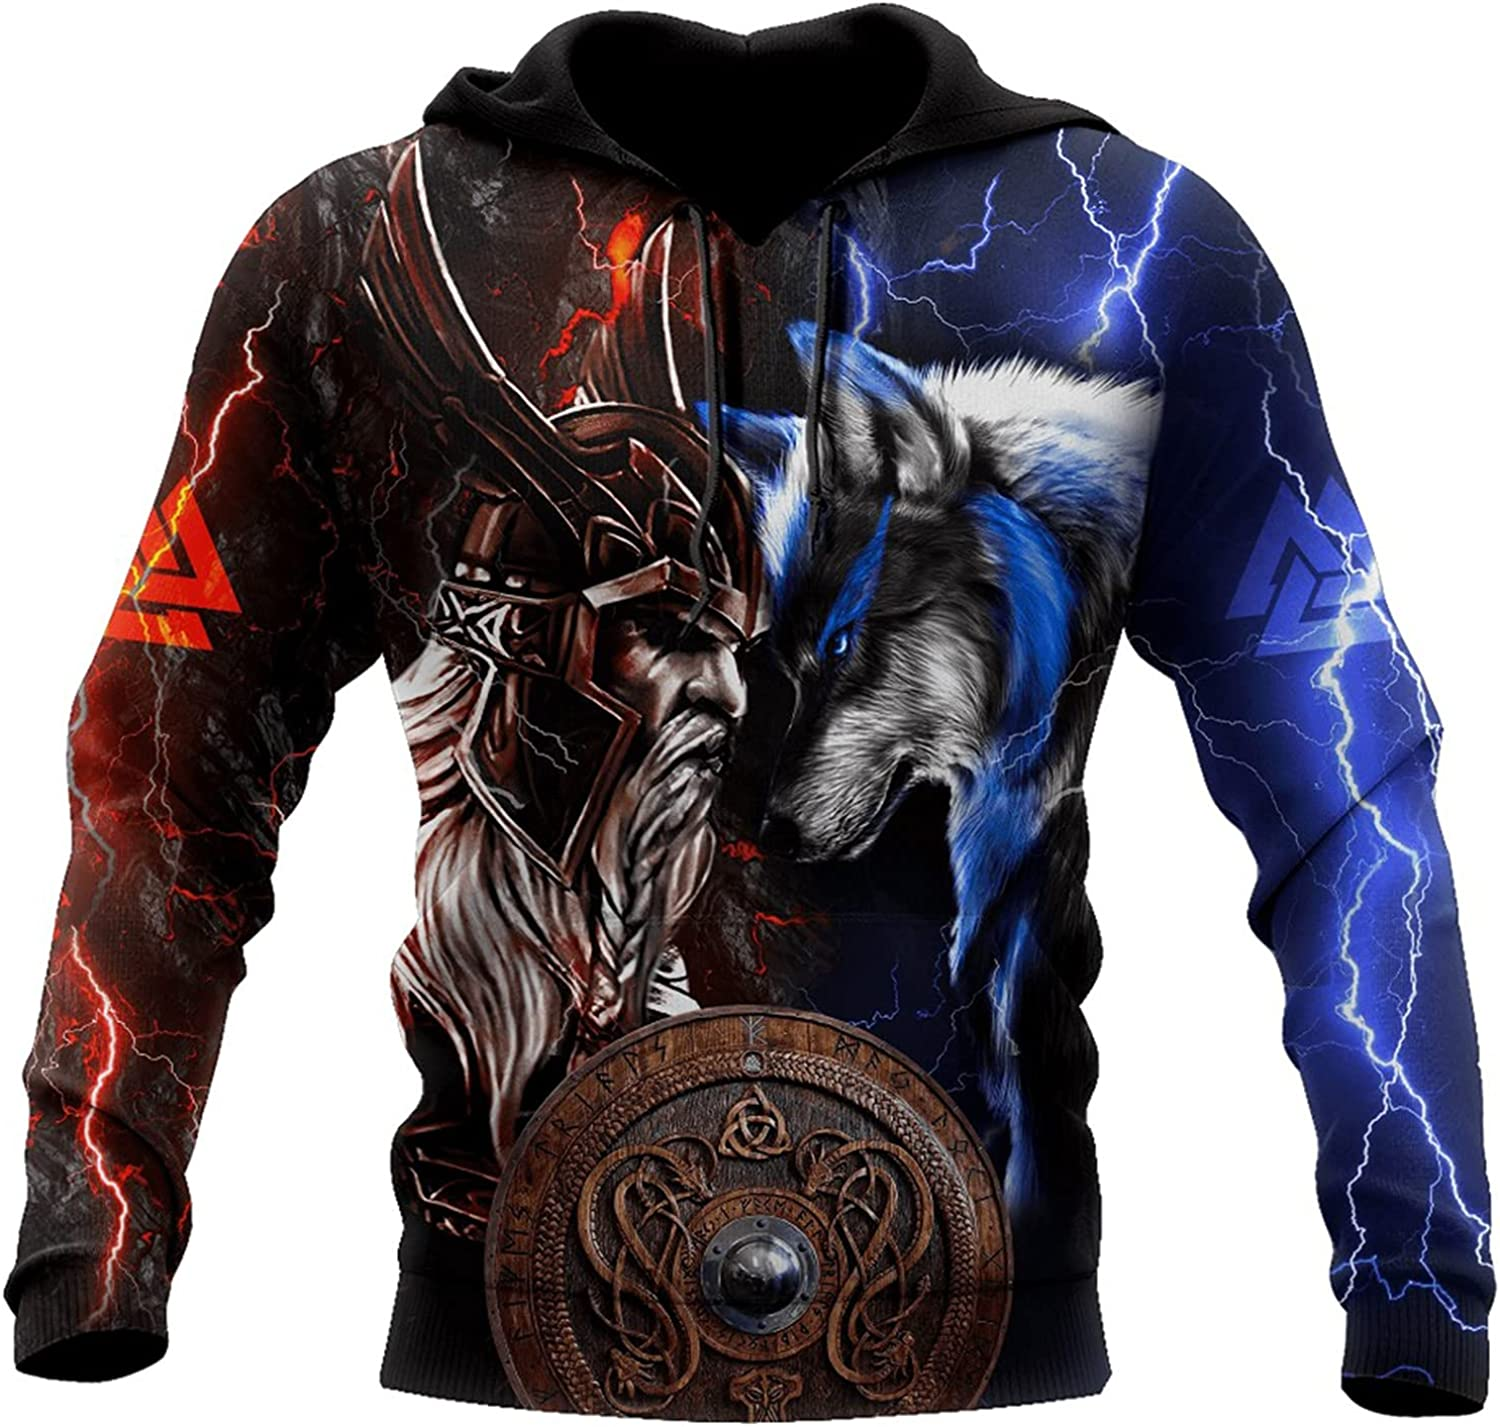 Viking Hoodies,Odin and Wolf 3D All Over Printed Mens Hooded Sweatshirt Unisex Zip Pullover Casual Jacket